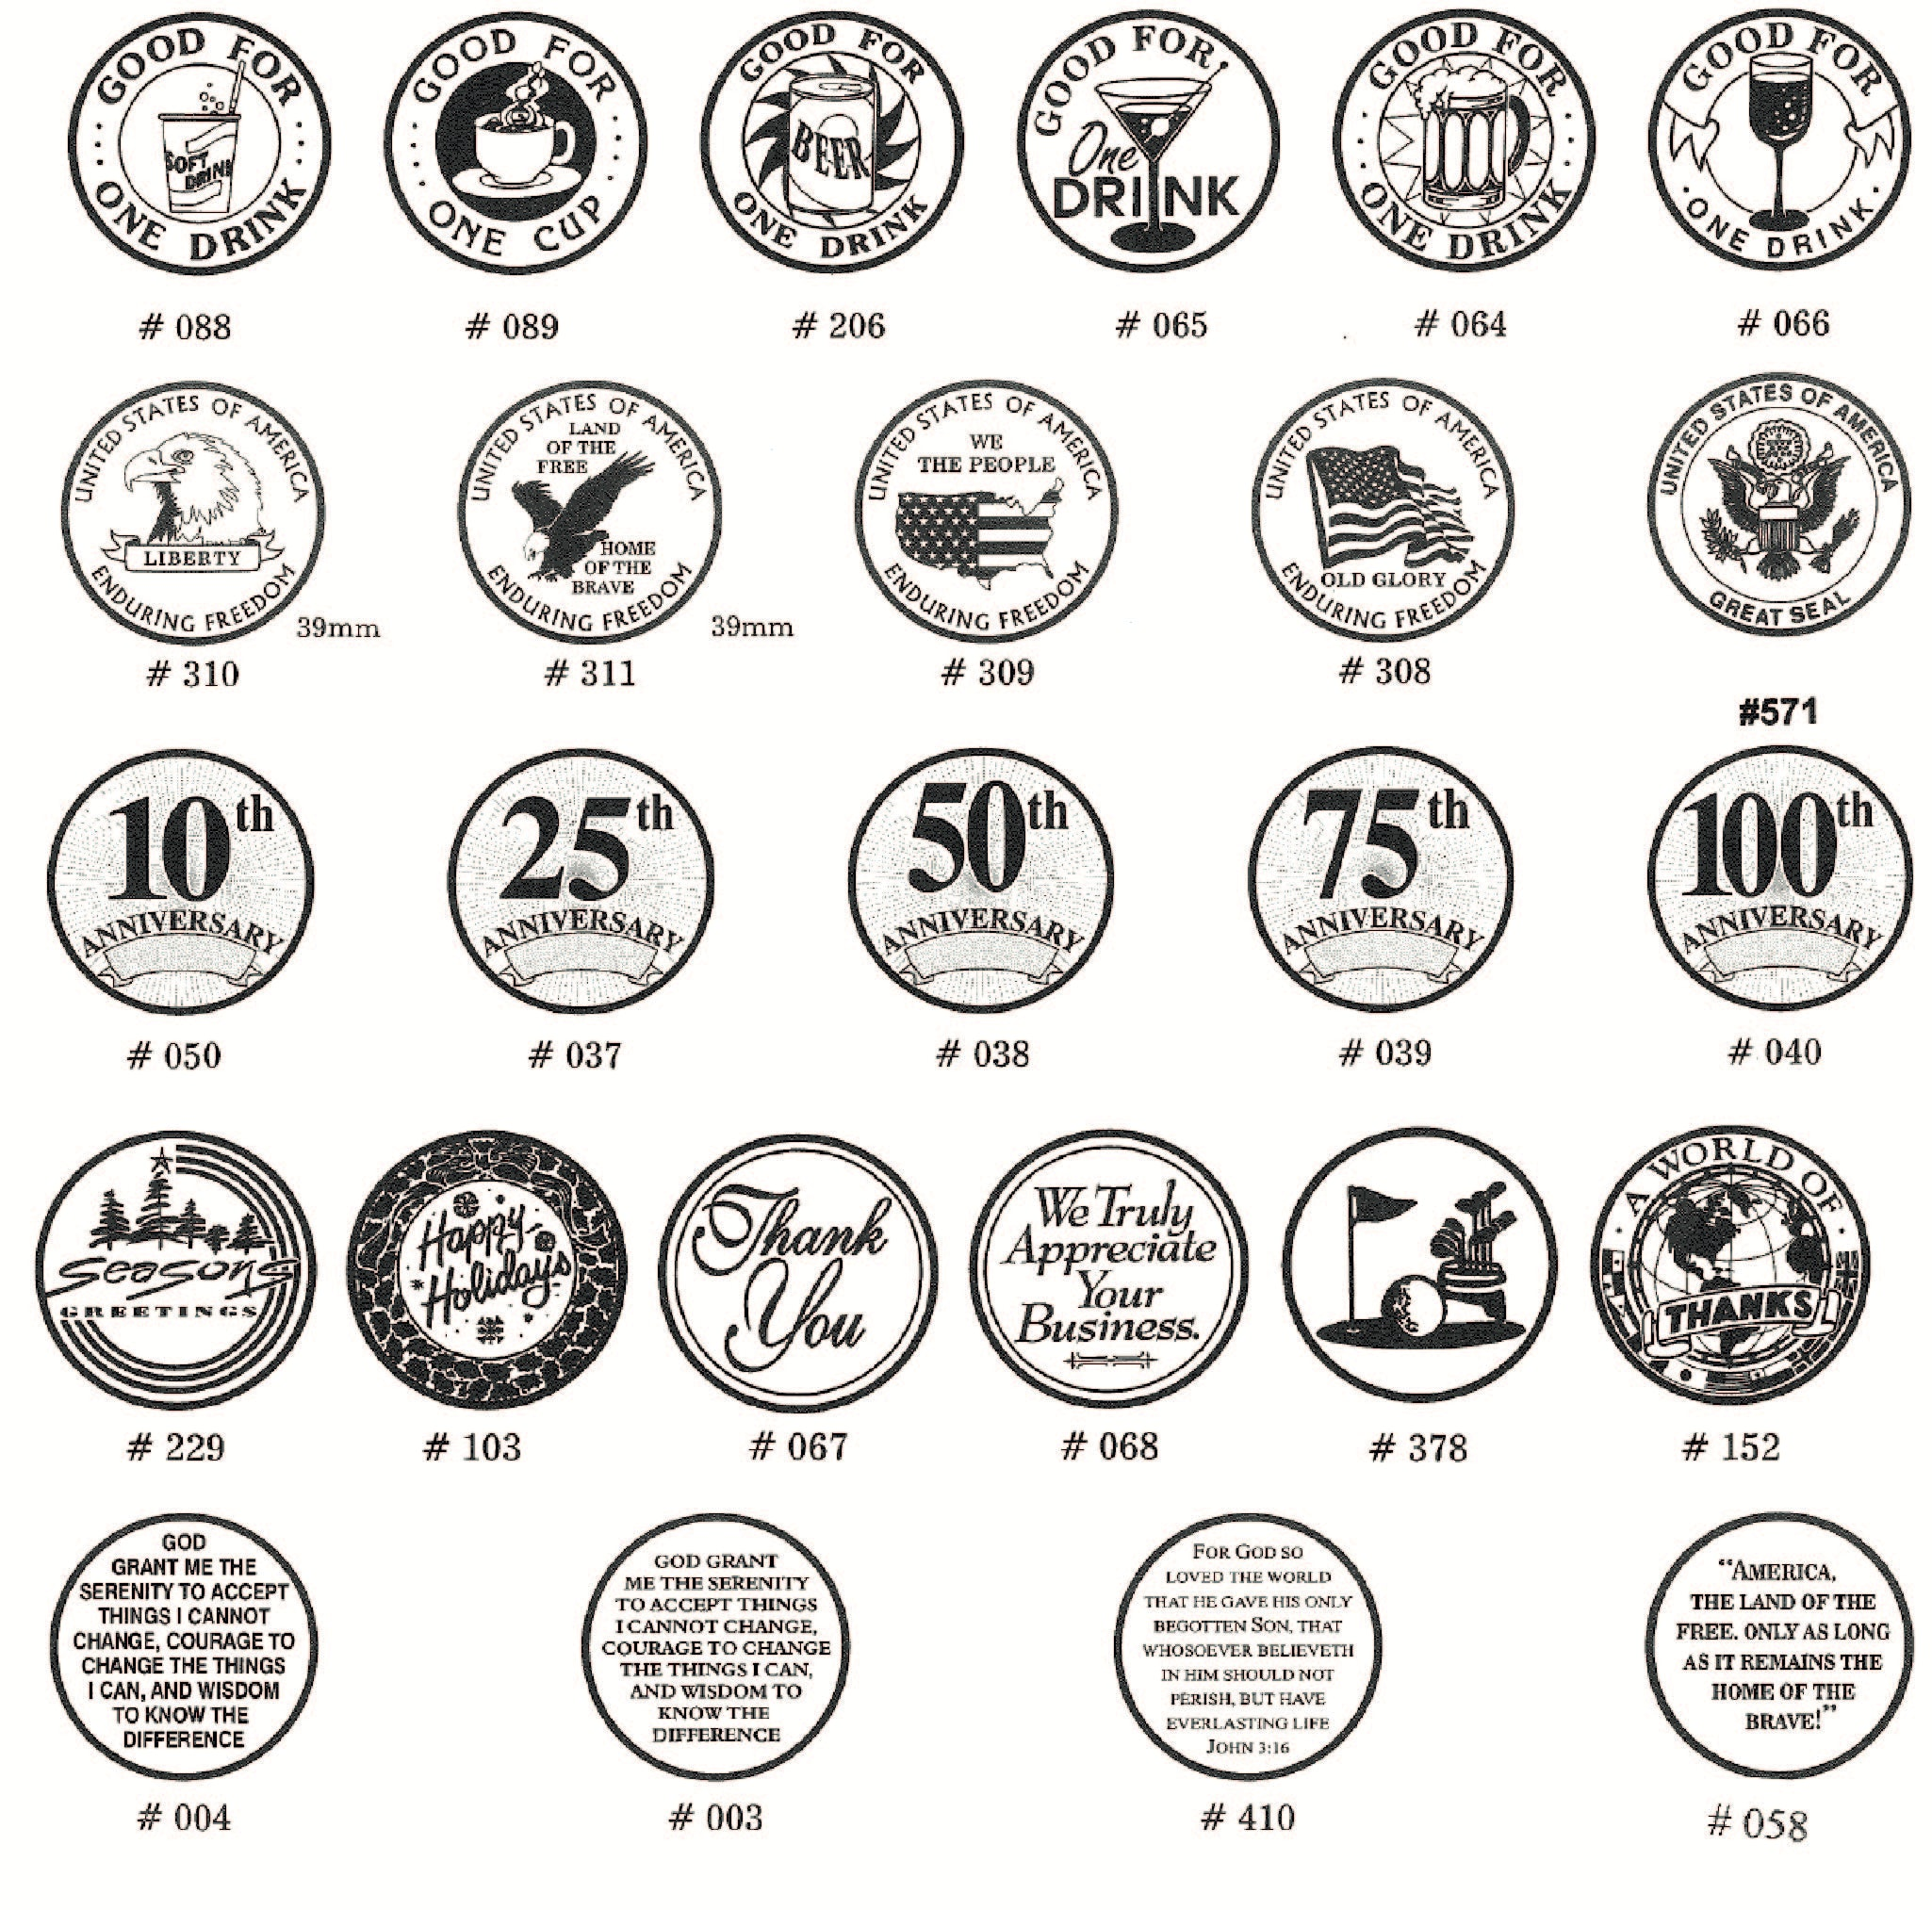 http://files.b-token.ca/files/273/original/Aluminium tokens standard designs.jpg?1568723436